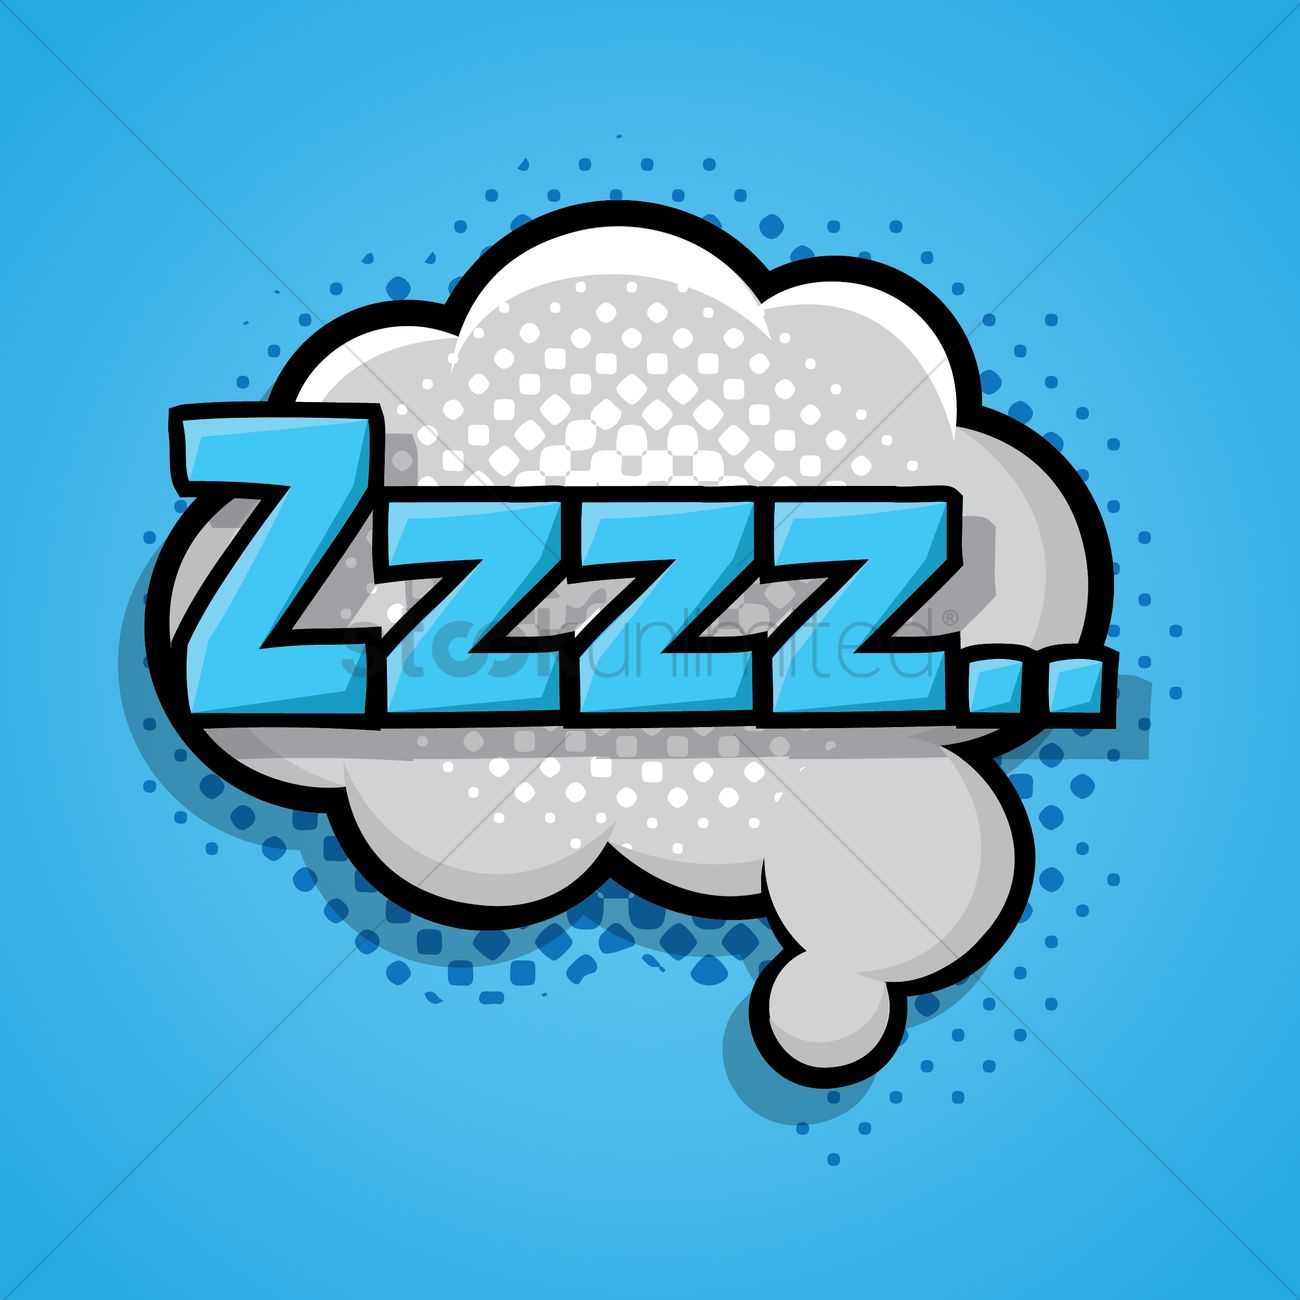 zzzz best Definition of zzzz best: company created by barry minnow in the 1980's that appeared to be successful but most of the profits were from crime , fraud or fabricated.